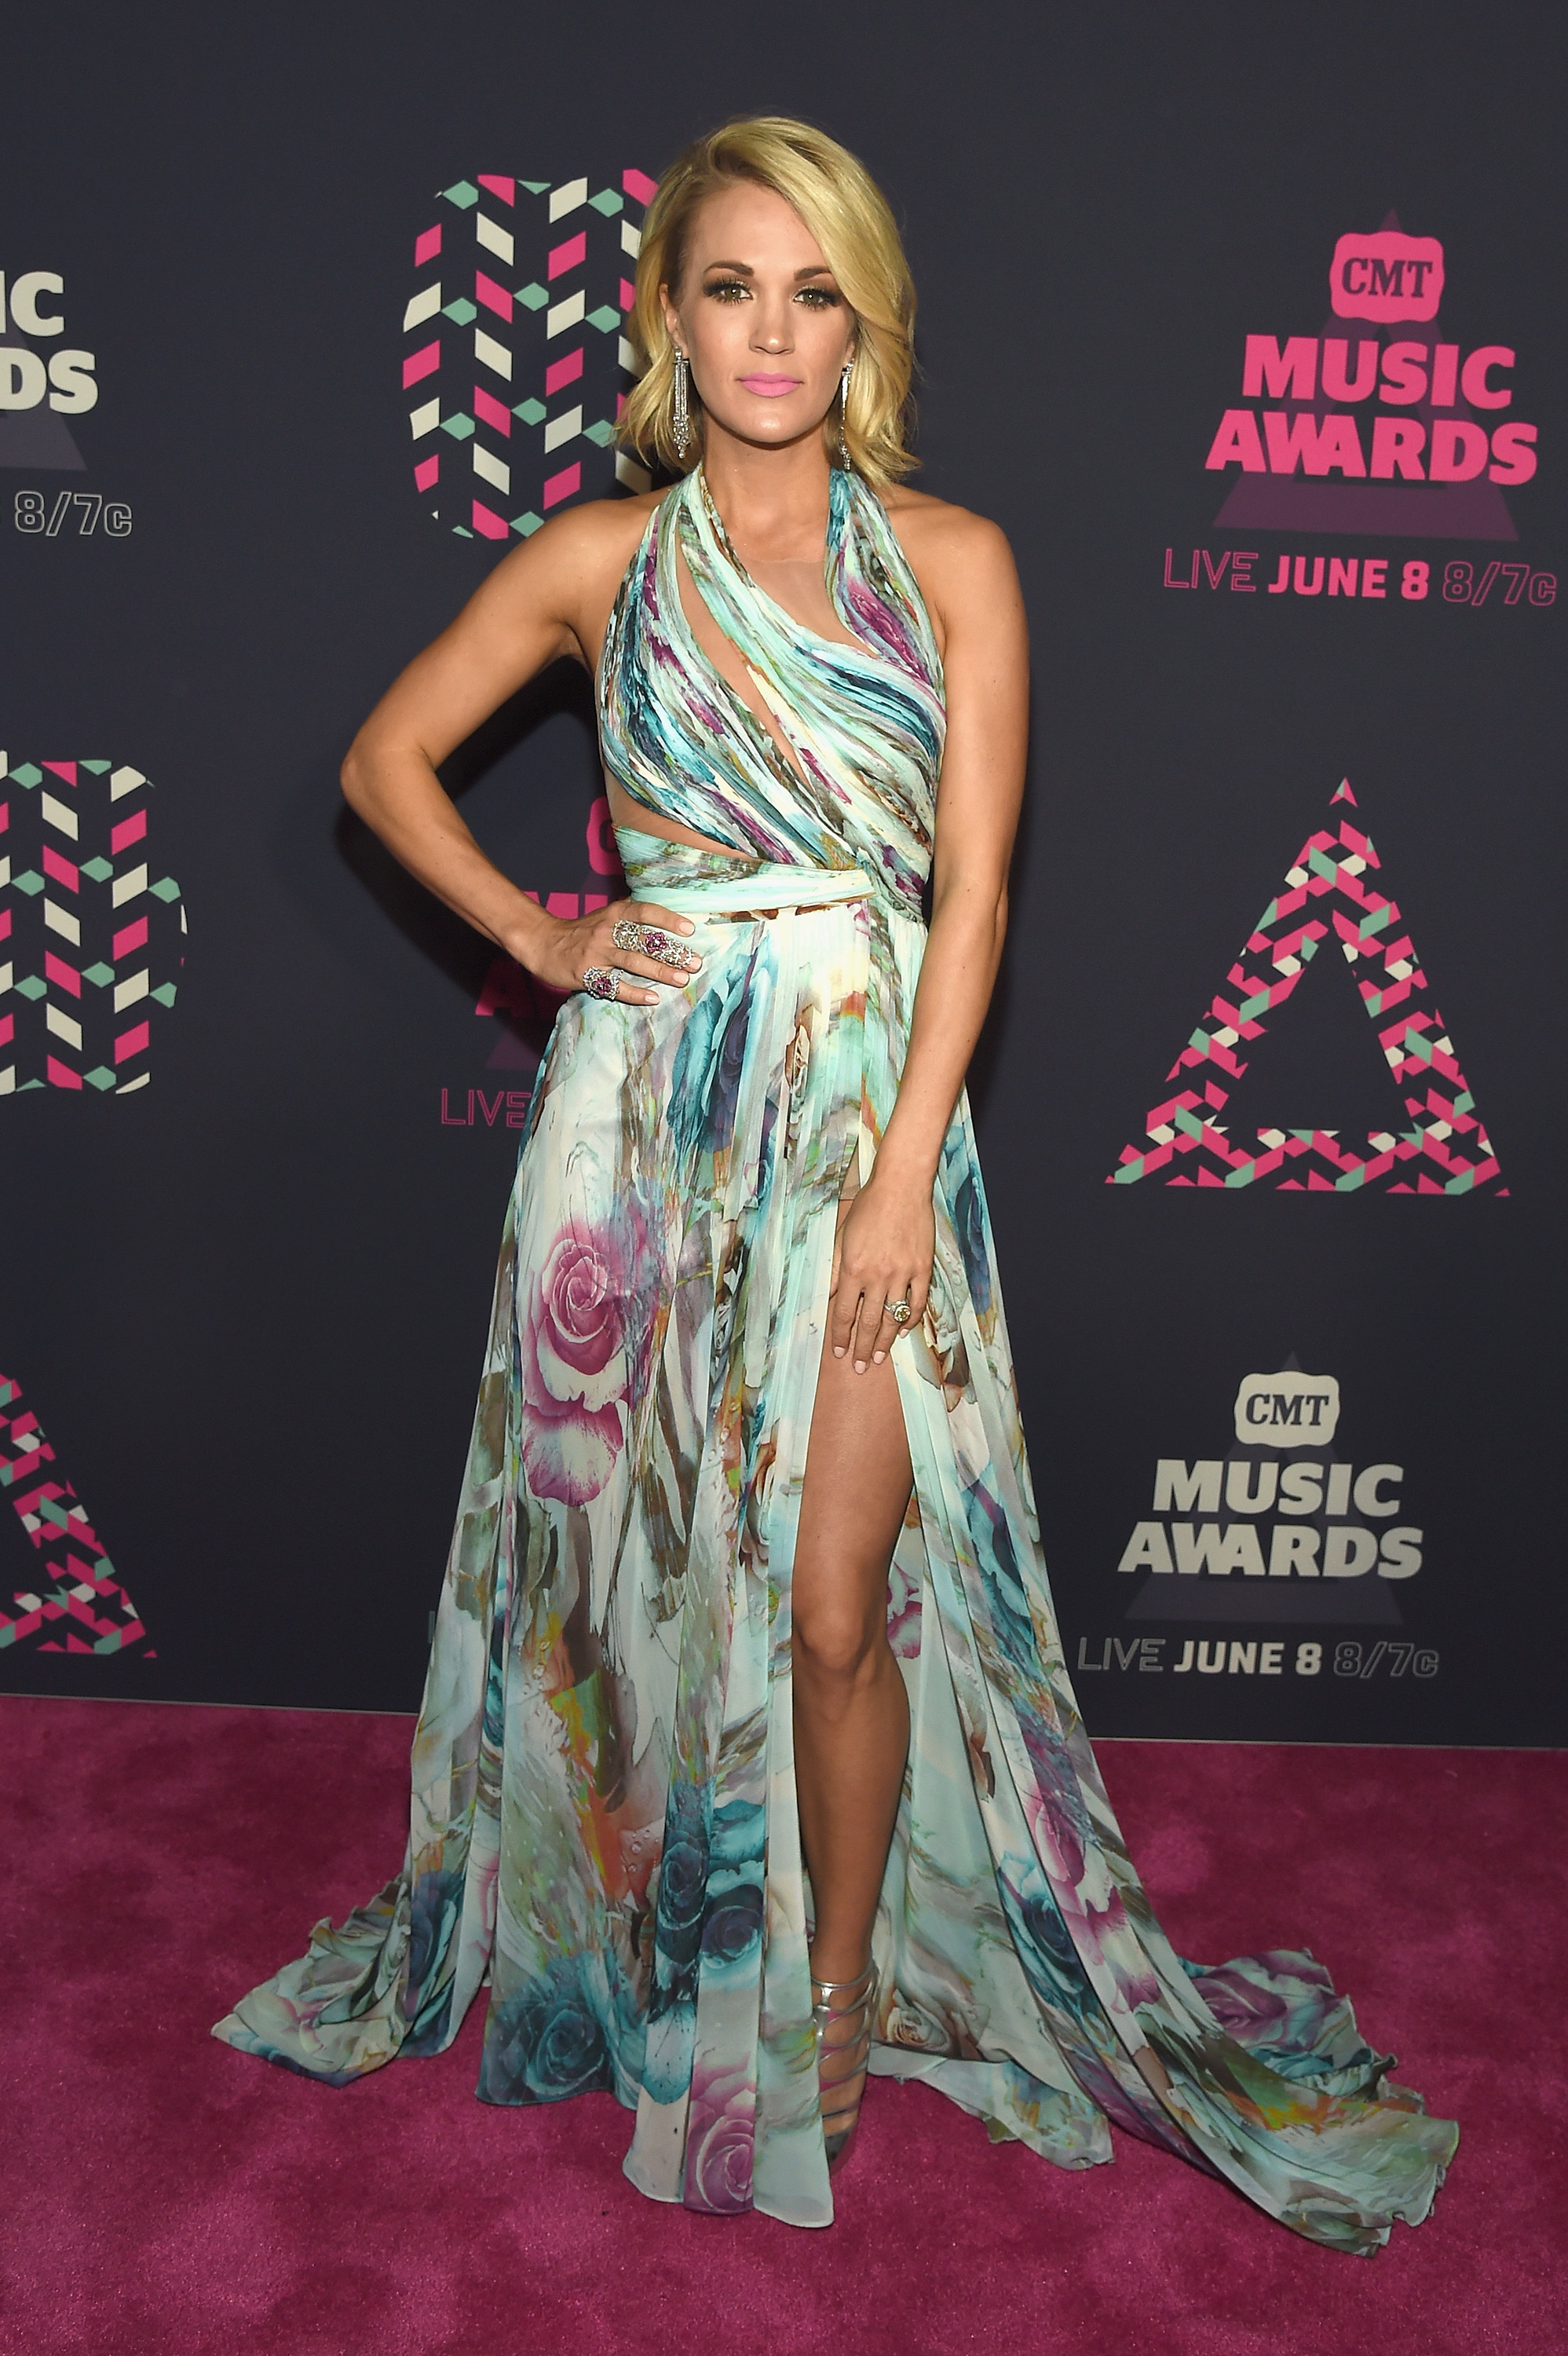 Carrie Underwood in Davidson Zanine at the 2016 Academy of